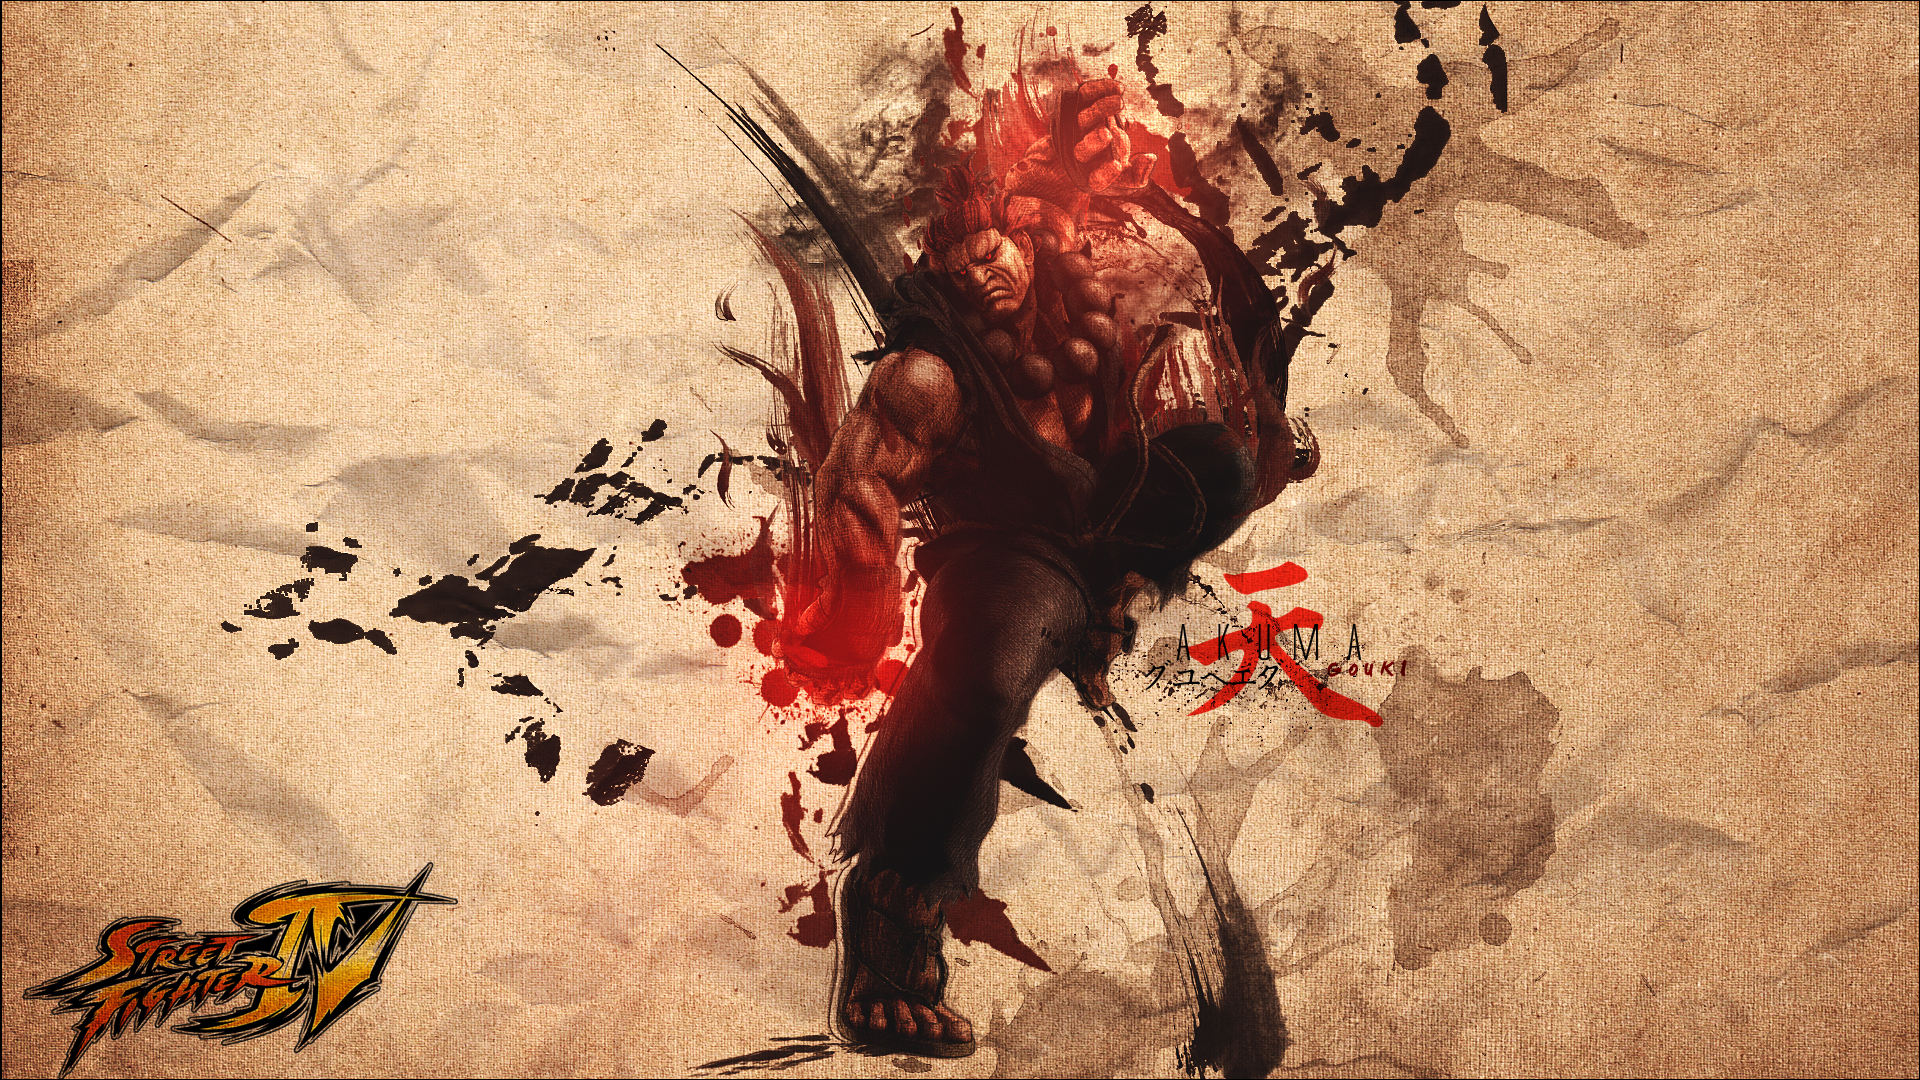 Download Akuma Street Fighter Wallpaper Gallery